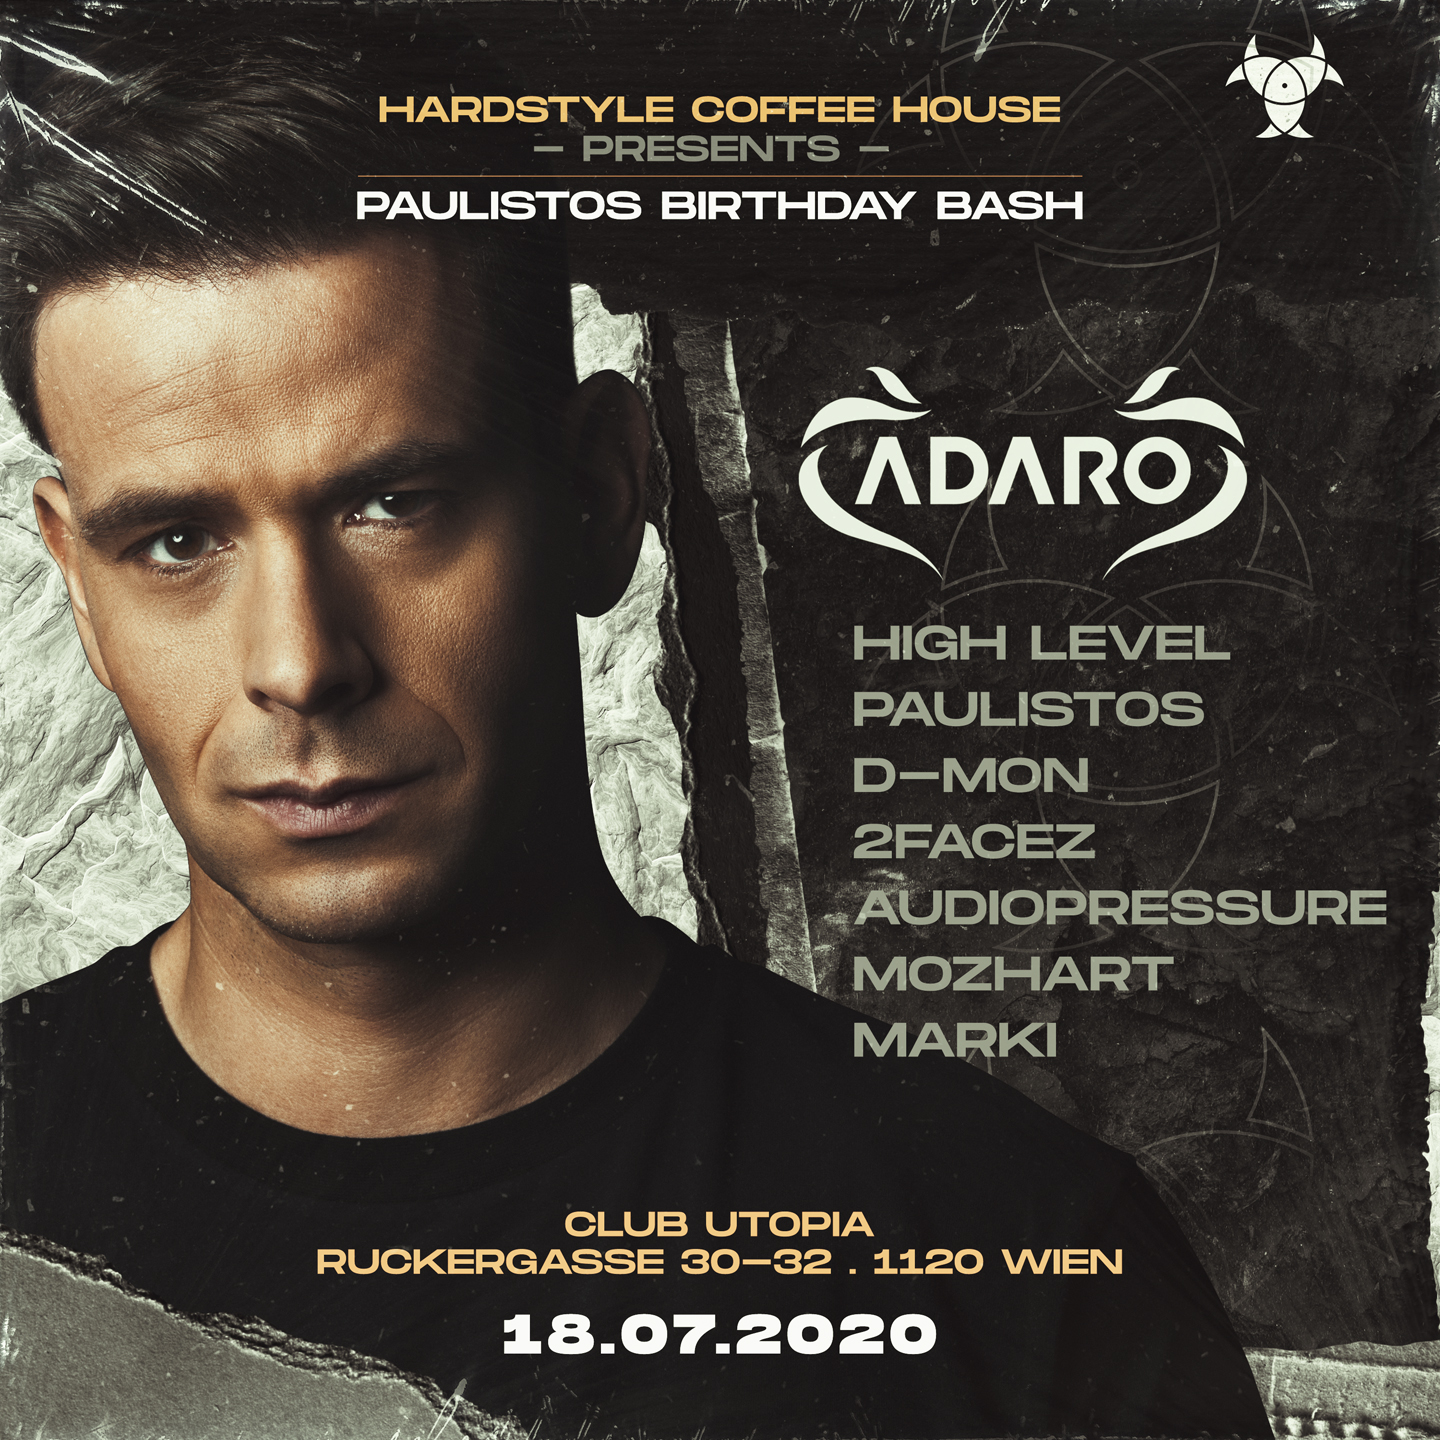 Adaro | Hardstyle Coffee House presents Paulistos B-Day Bash